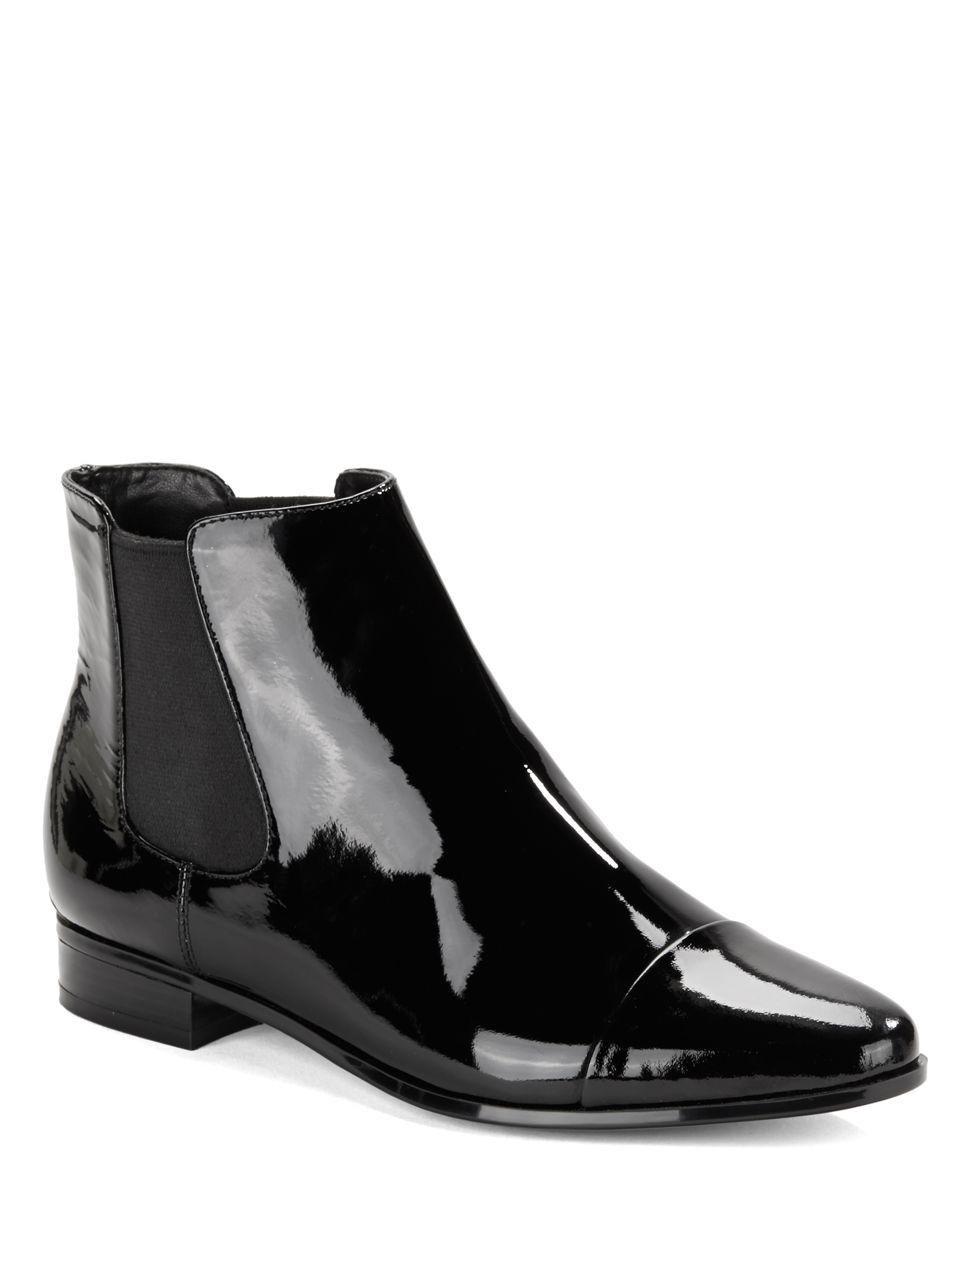 pennyblack_Lyst - Calvin Klein Finilla Faux Patent Leather Booties in Black